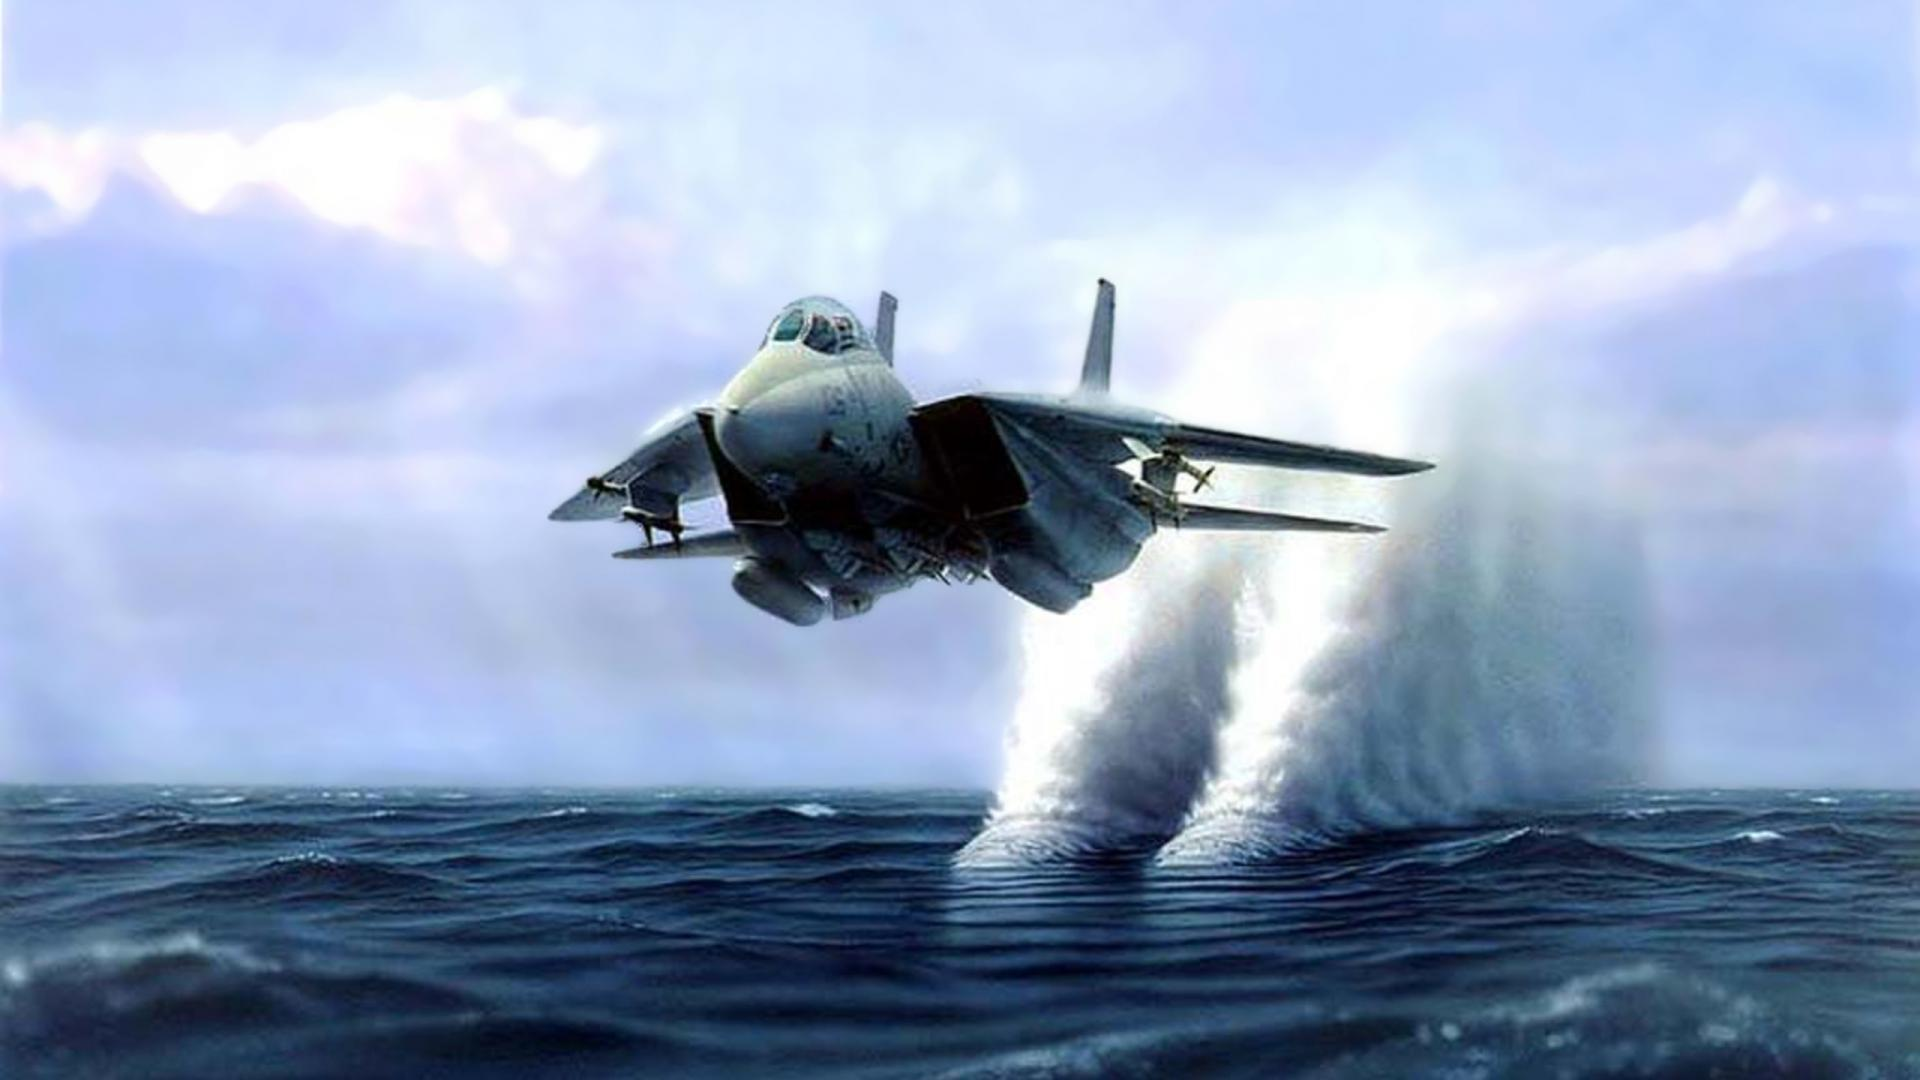 Fighter Jet Wallpapers... Kate Beckinsale Movies